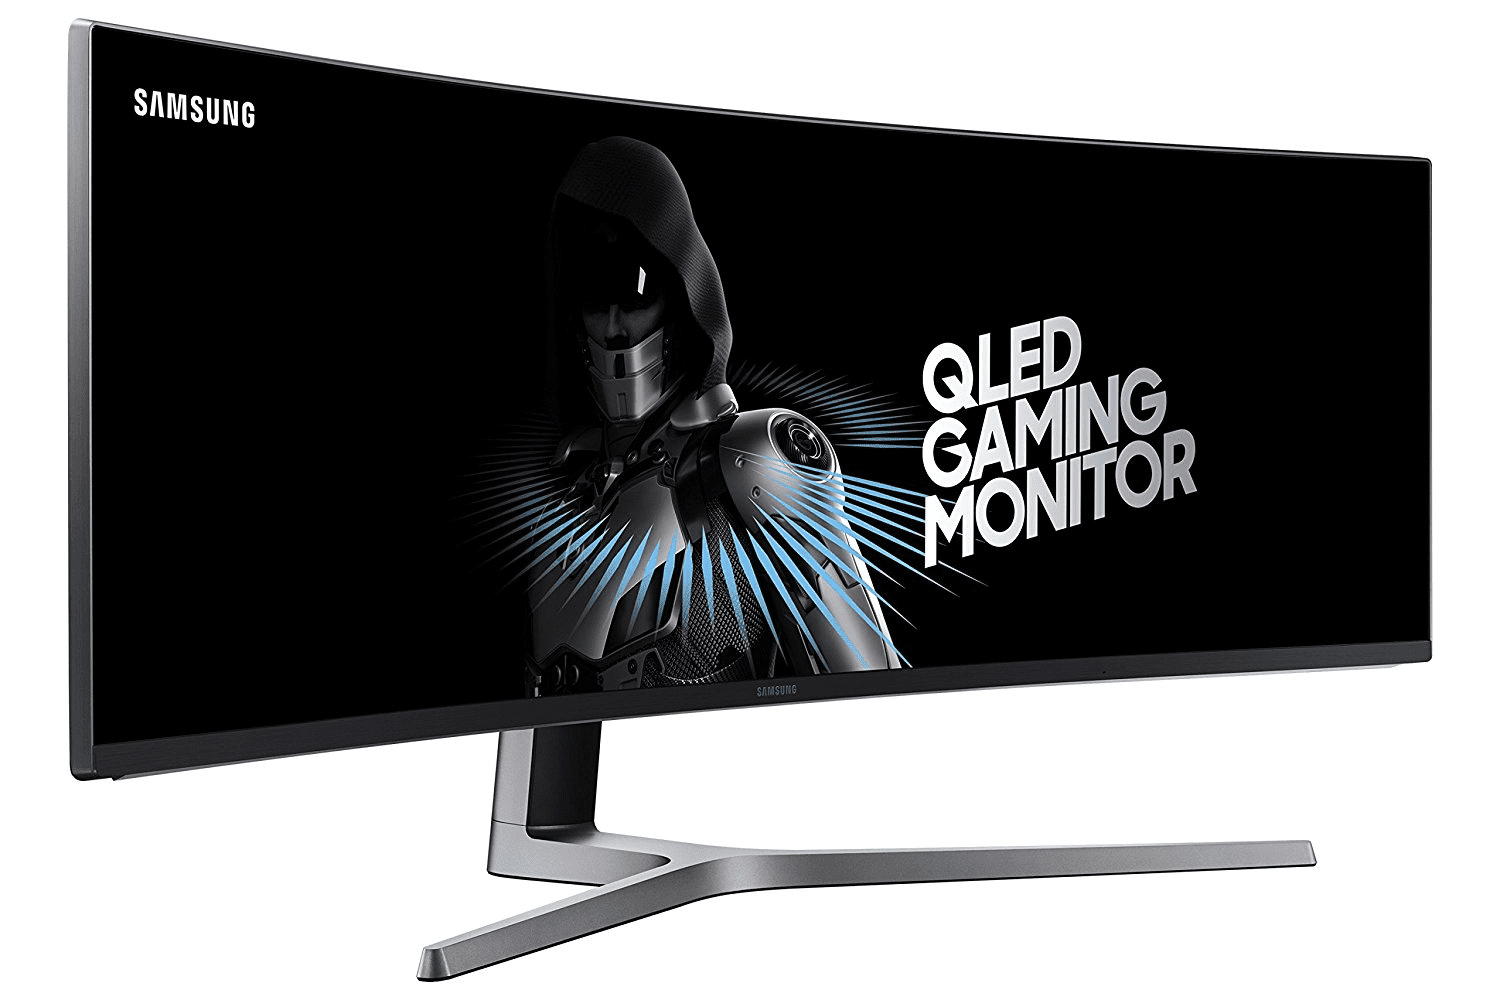 hight resolution of samsung lc49hg90dmnxza chg90 series curved 49 inch gaming monitor